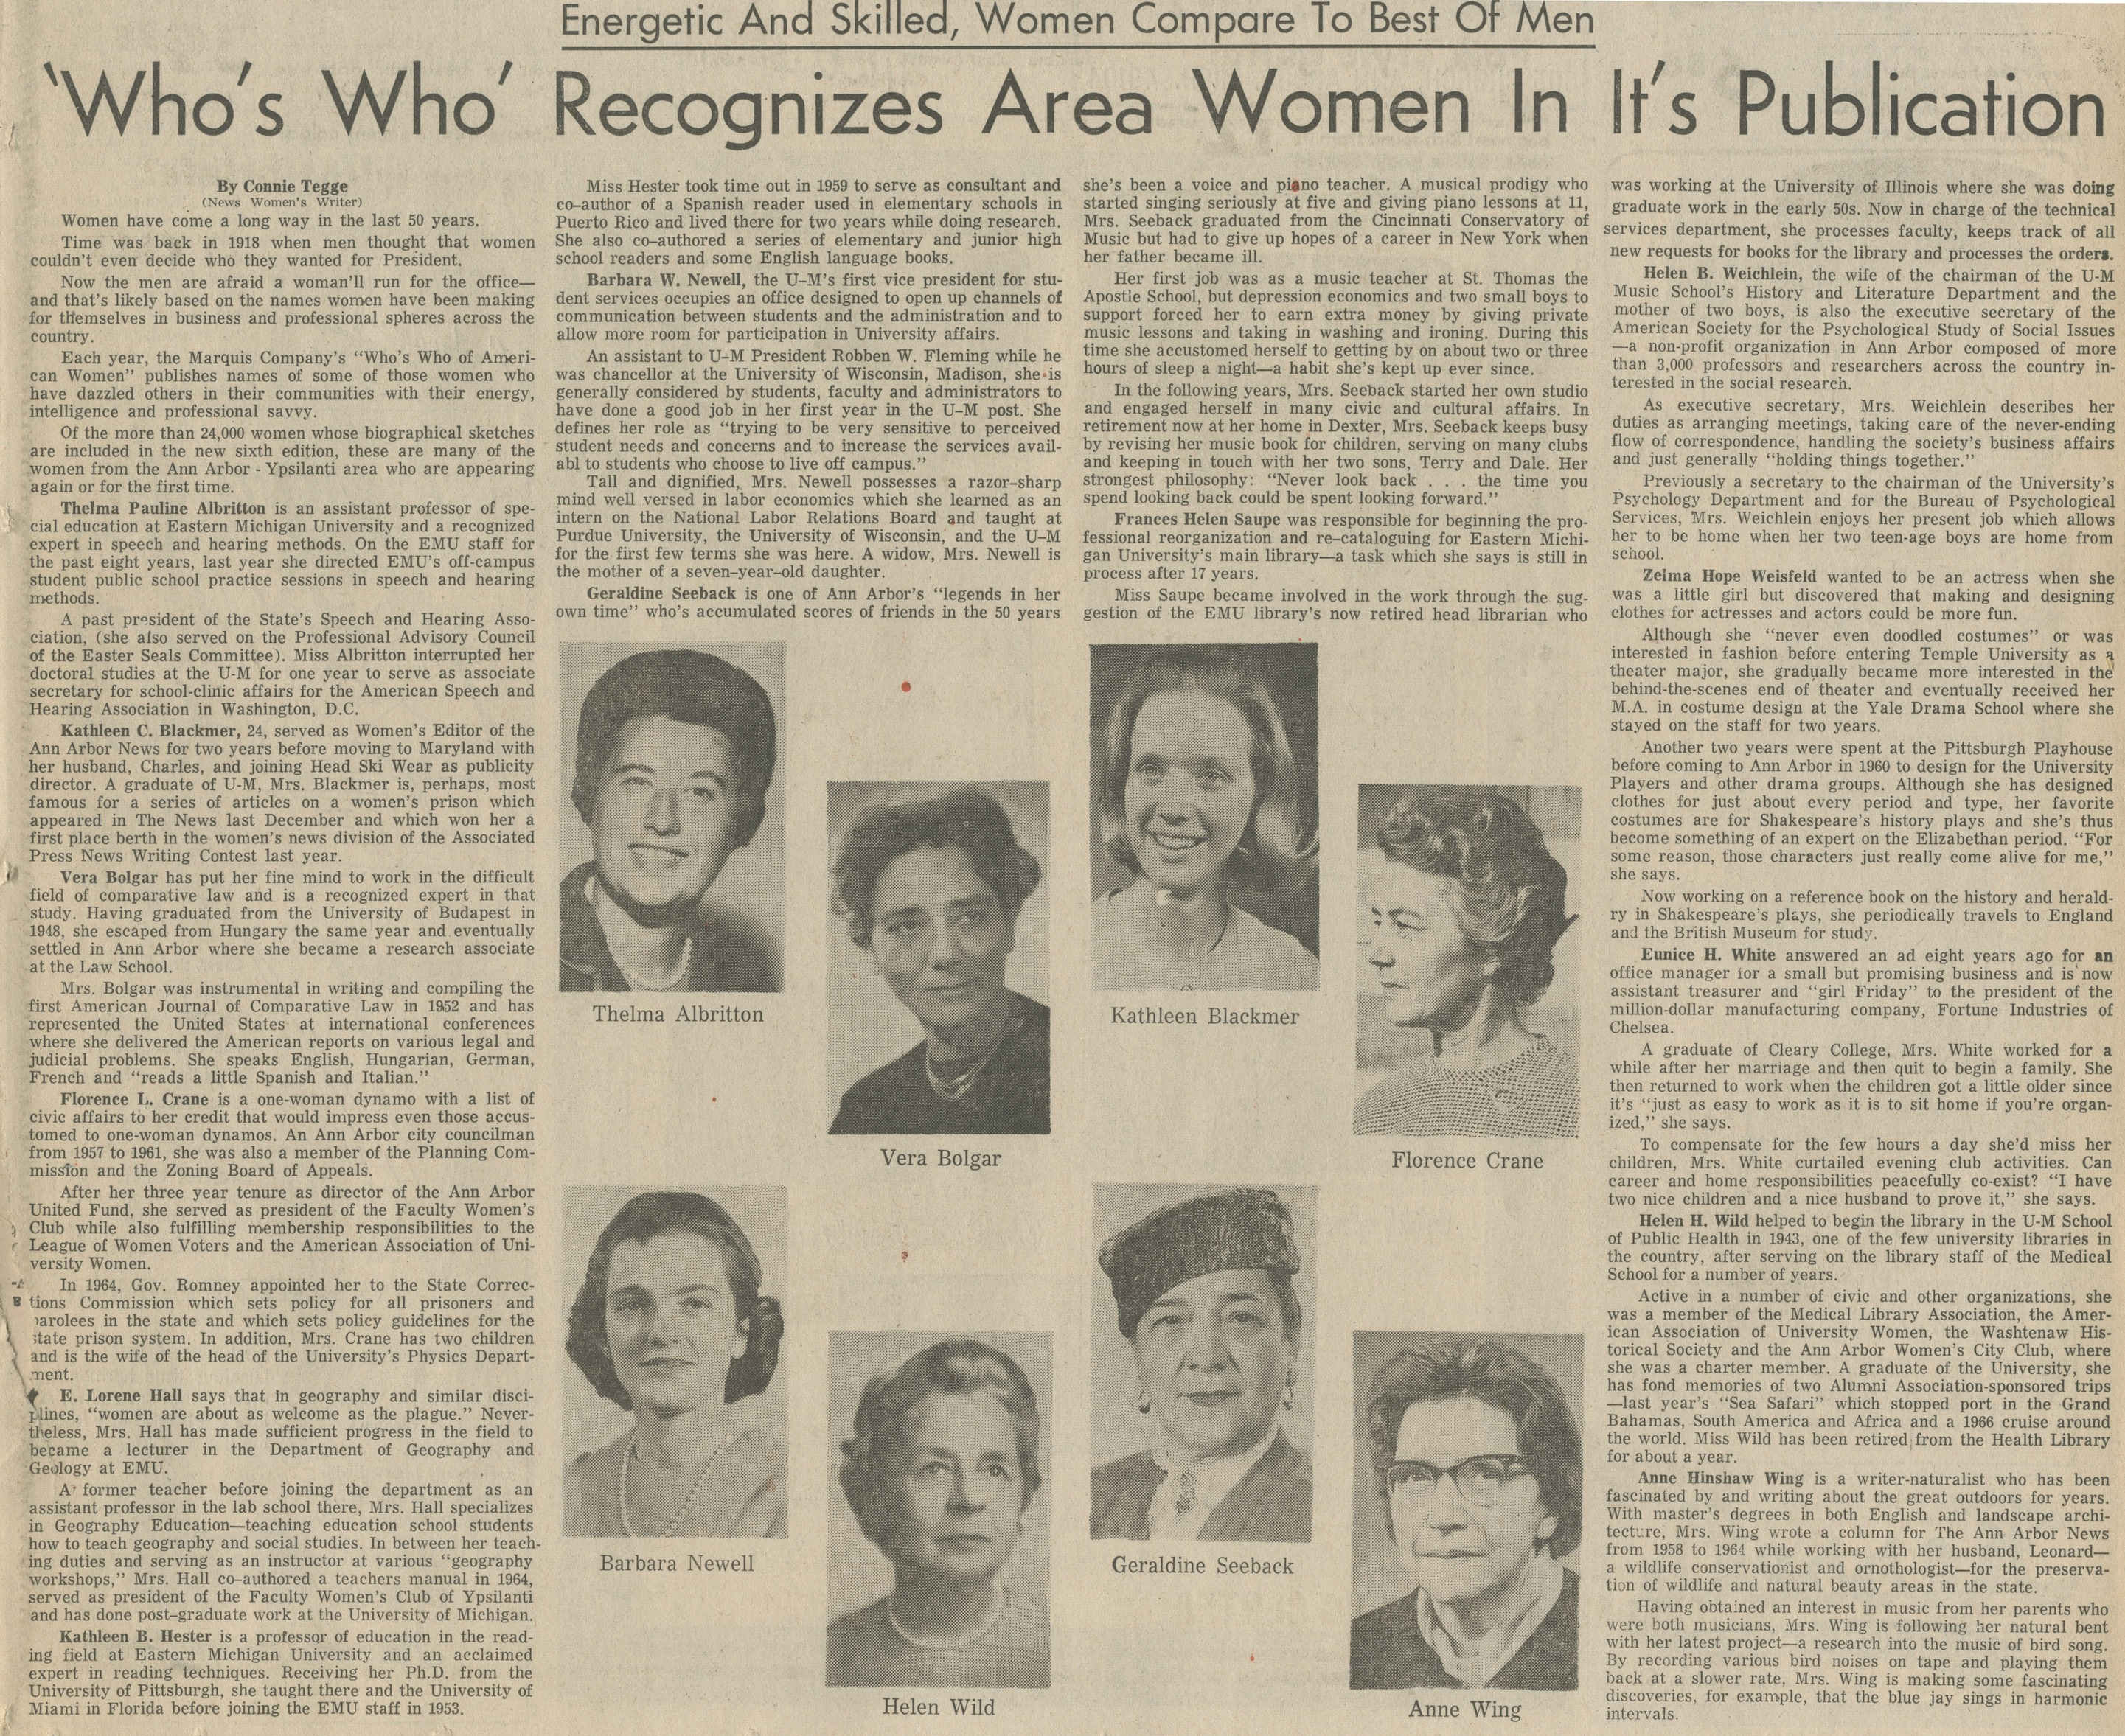 'Who's Who' Recognizes Area Women In It's Publication - Energetic And Skilled, Women Compare To Best Of Men image